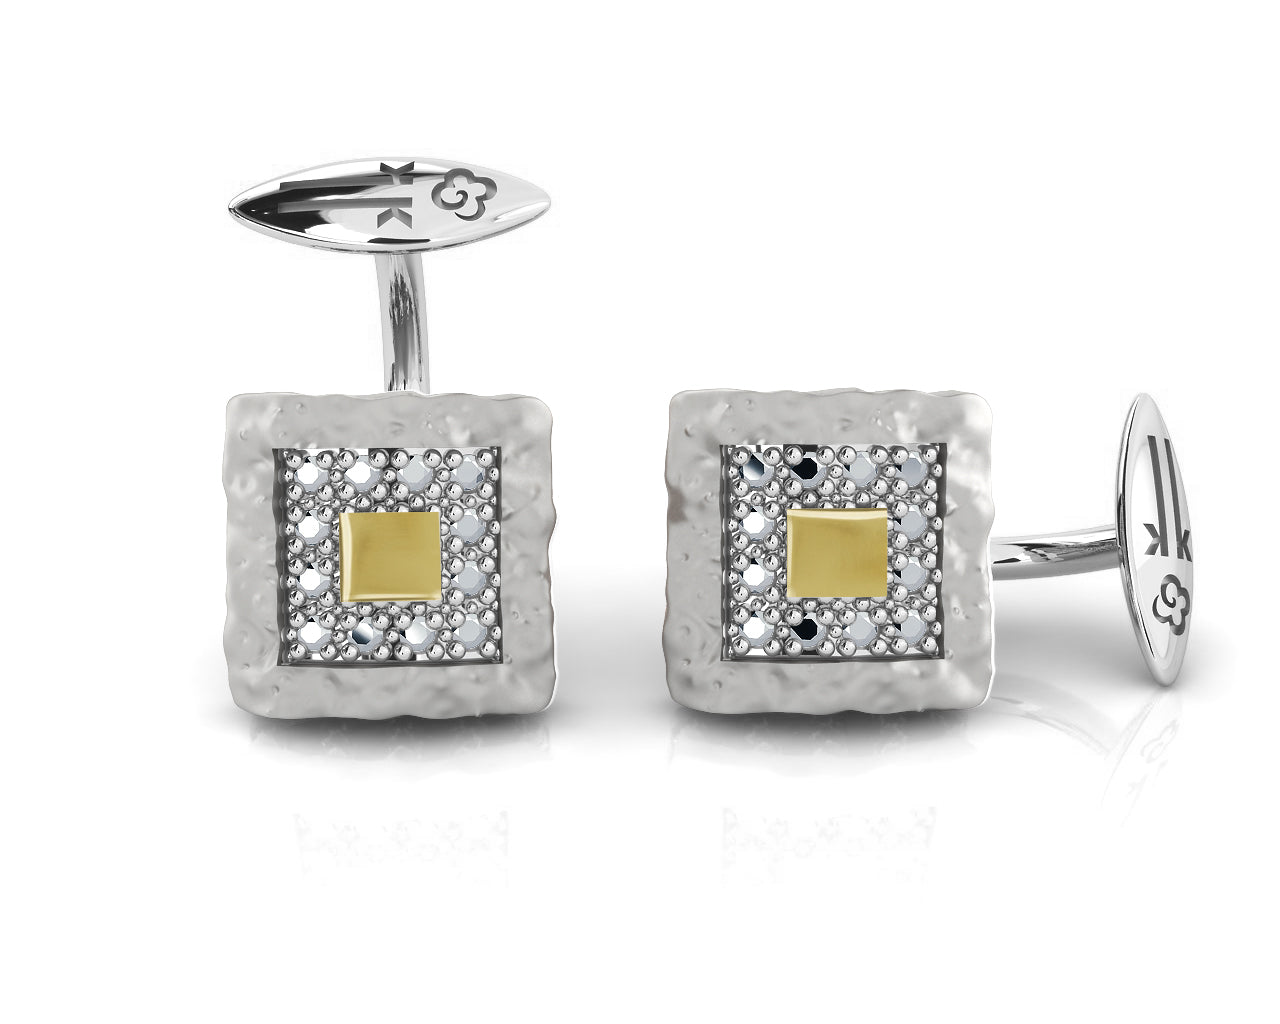 Core Magma Compass' Cufflinks with Black Gold Plated Sterling Silver  for Men